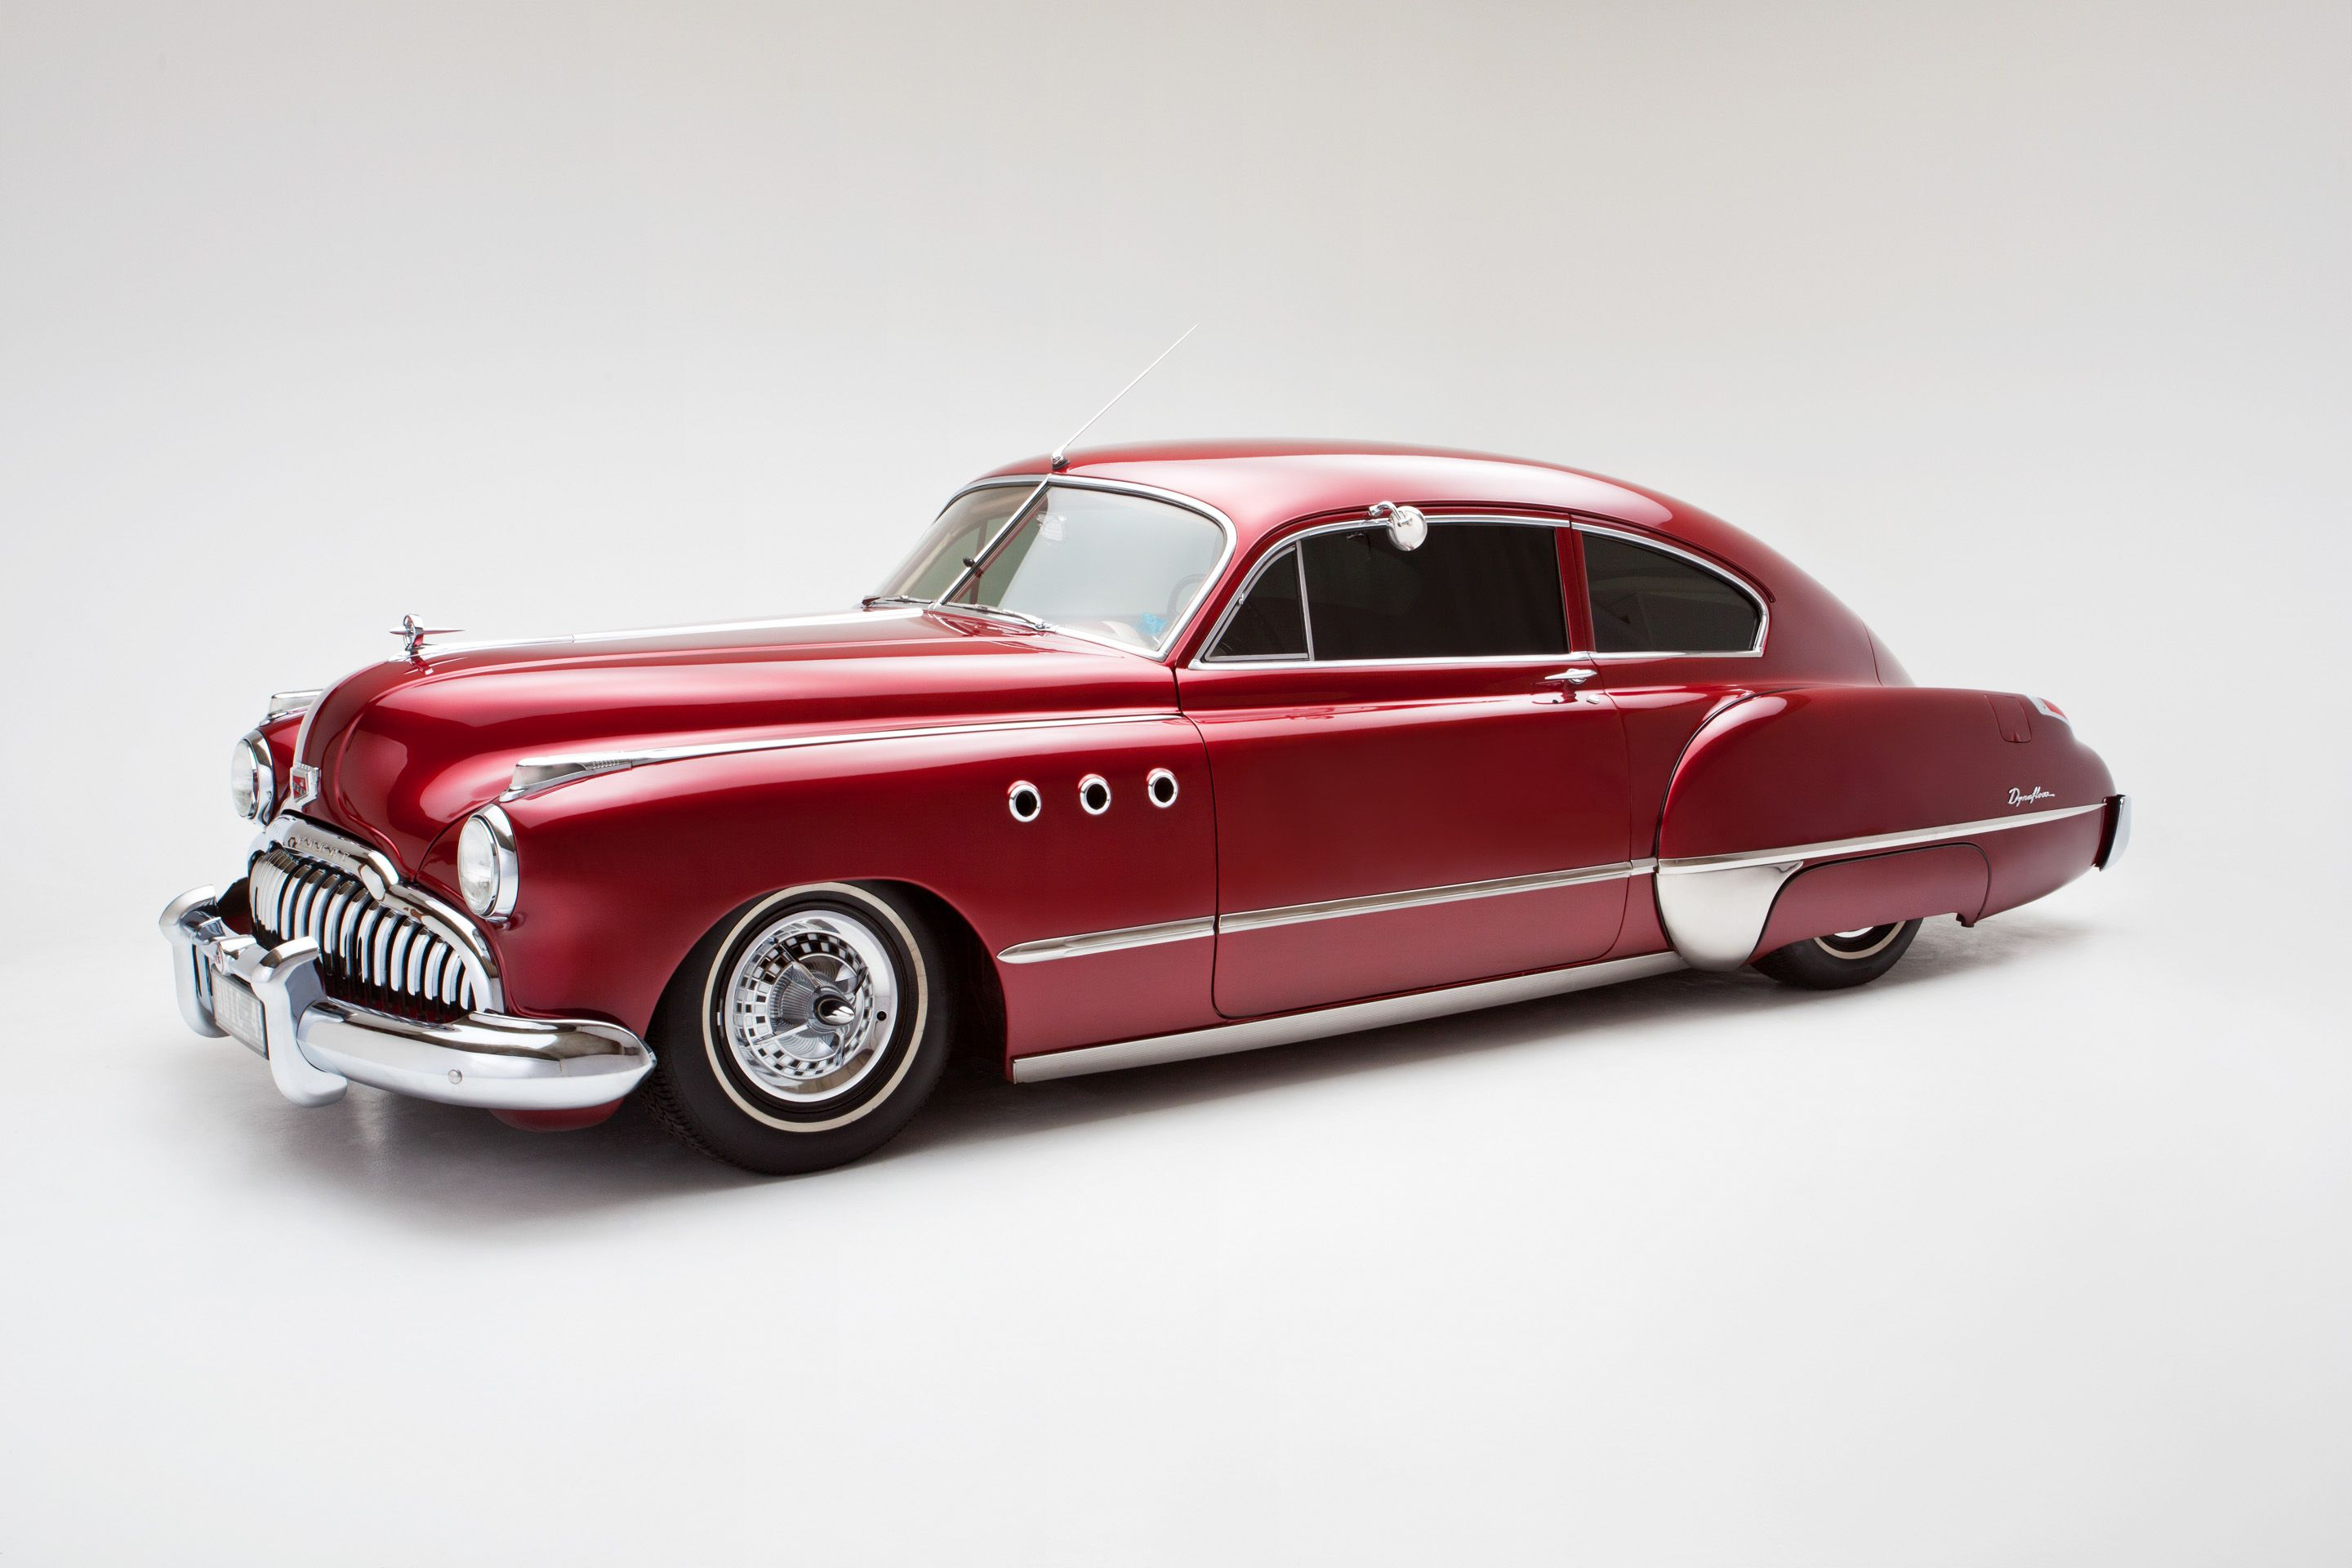 1949 Buick Photographed by Shane Monopoli | Car Photography ...